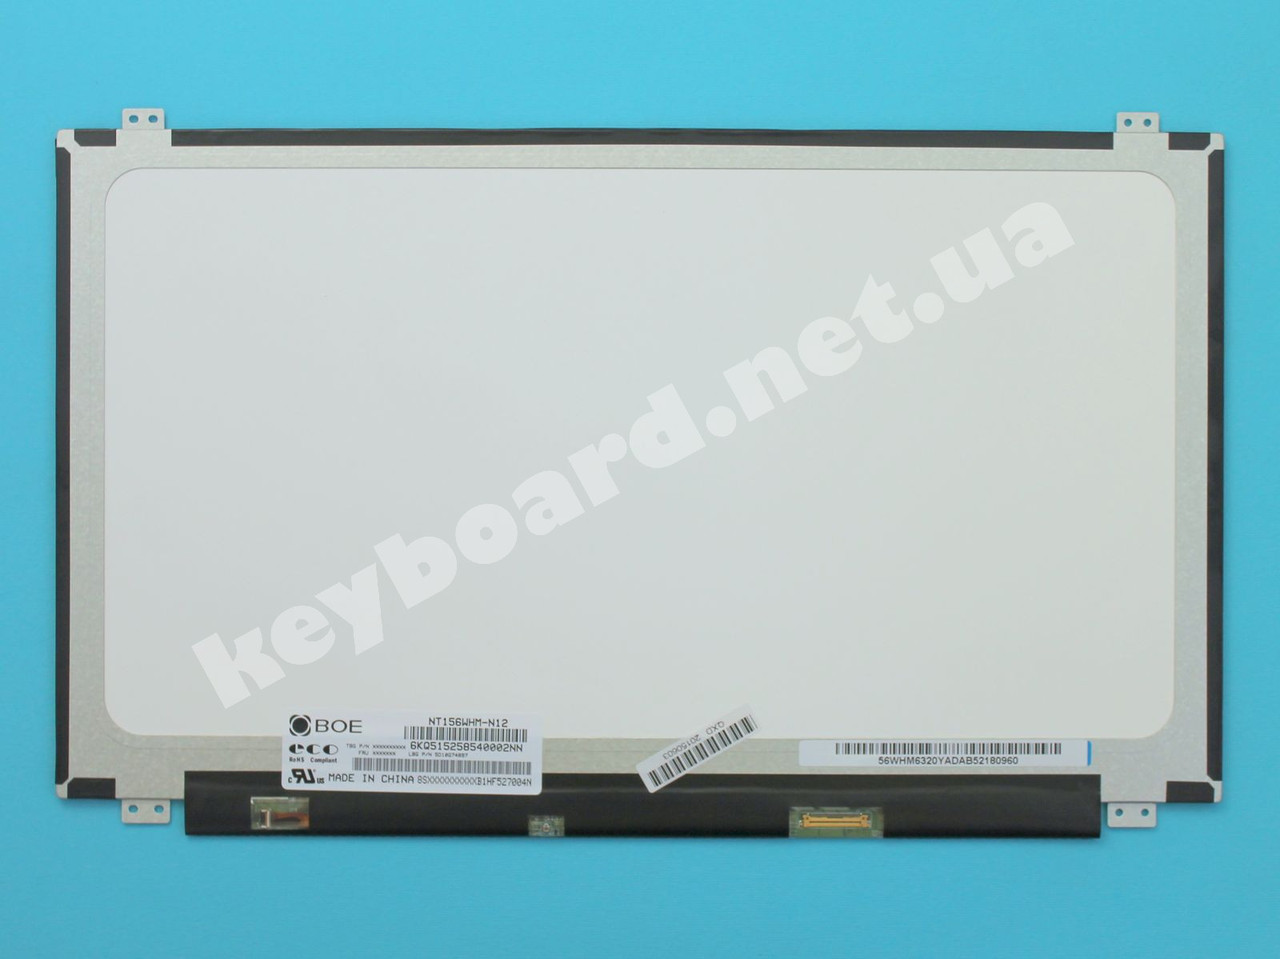 ACER ASPIRE K50-10 DRIVERS